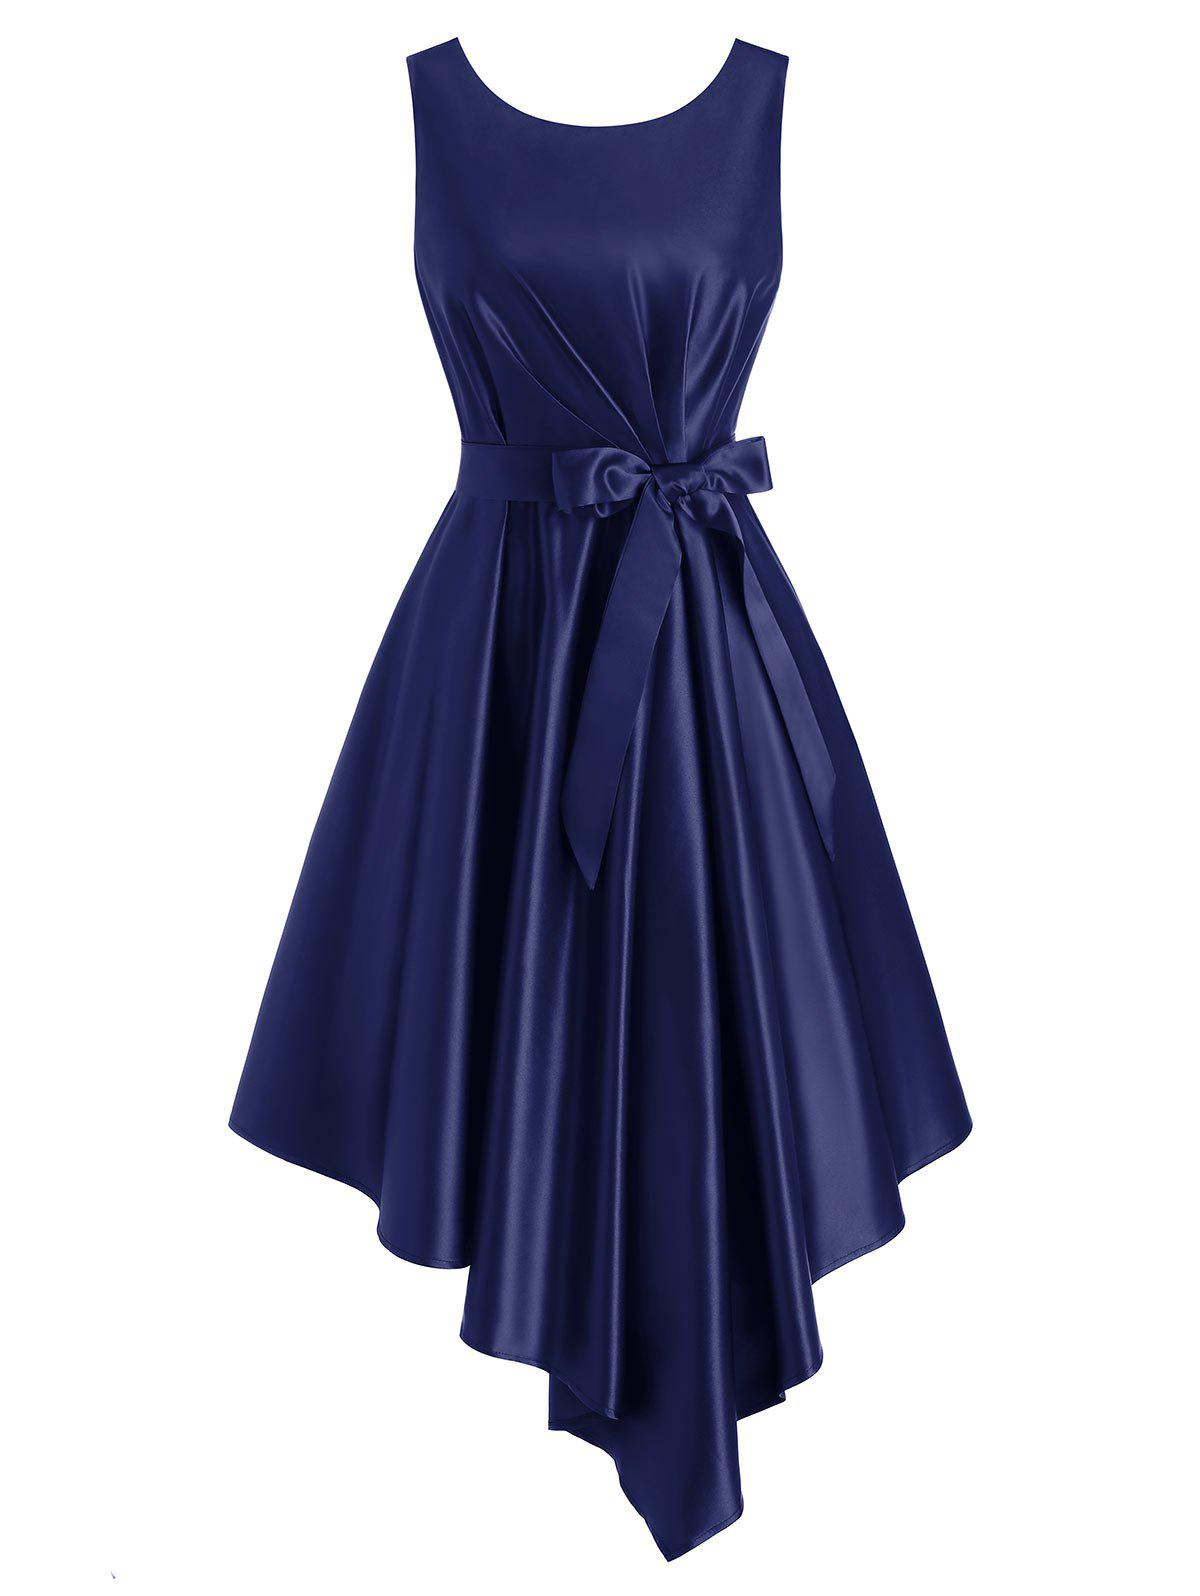 Belted Pleated Waisted Sleeveless Asymmetrical Dress - DEEP BLUE M